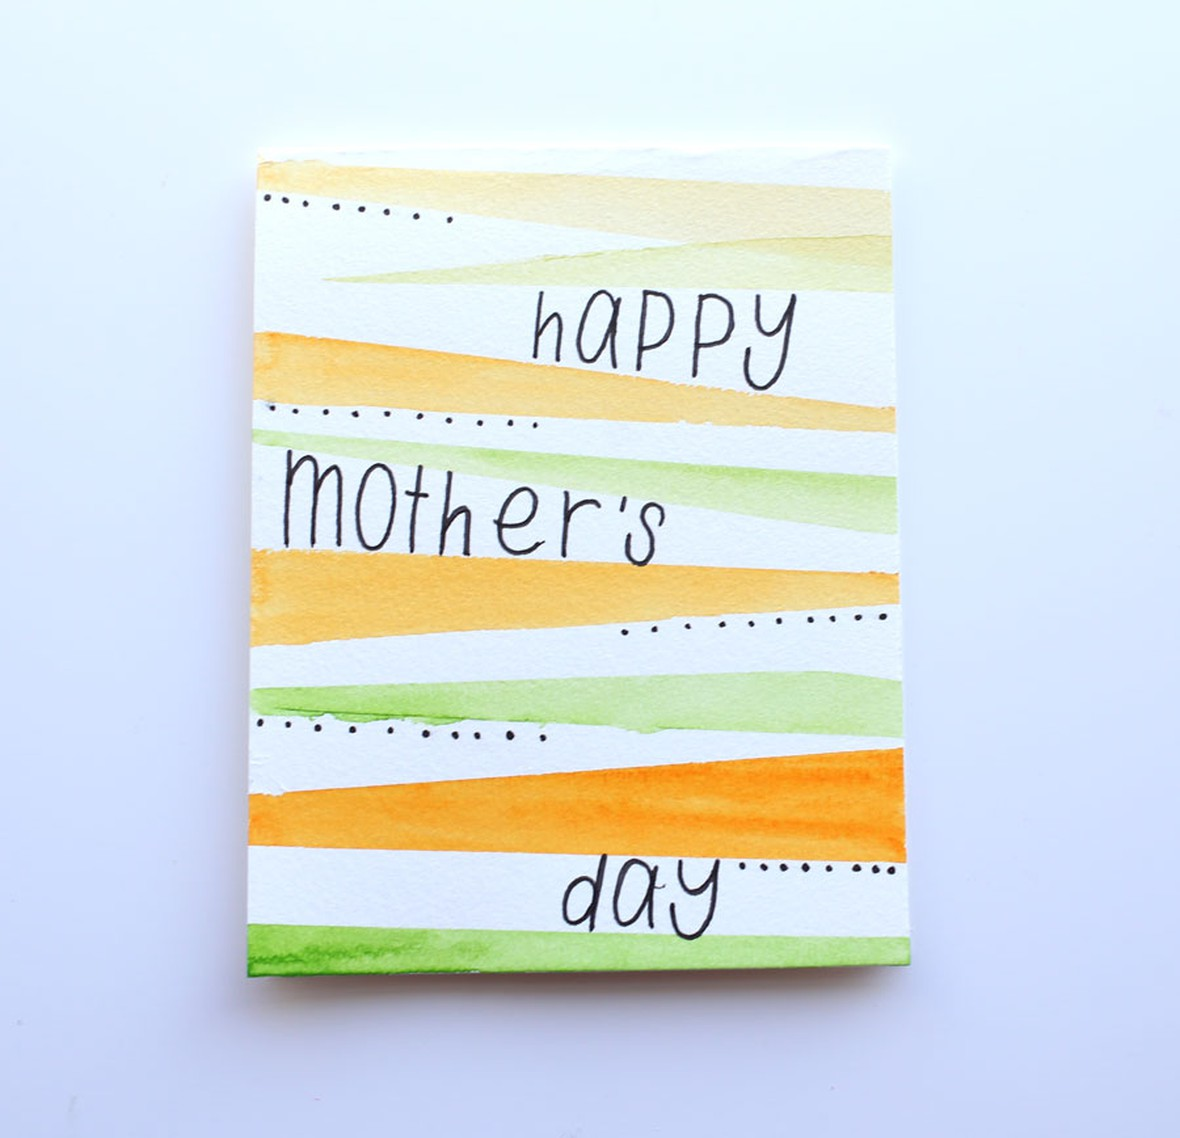 Happymothersdaycard web original